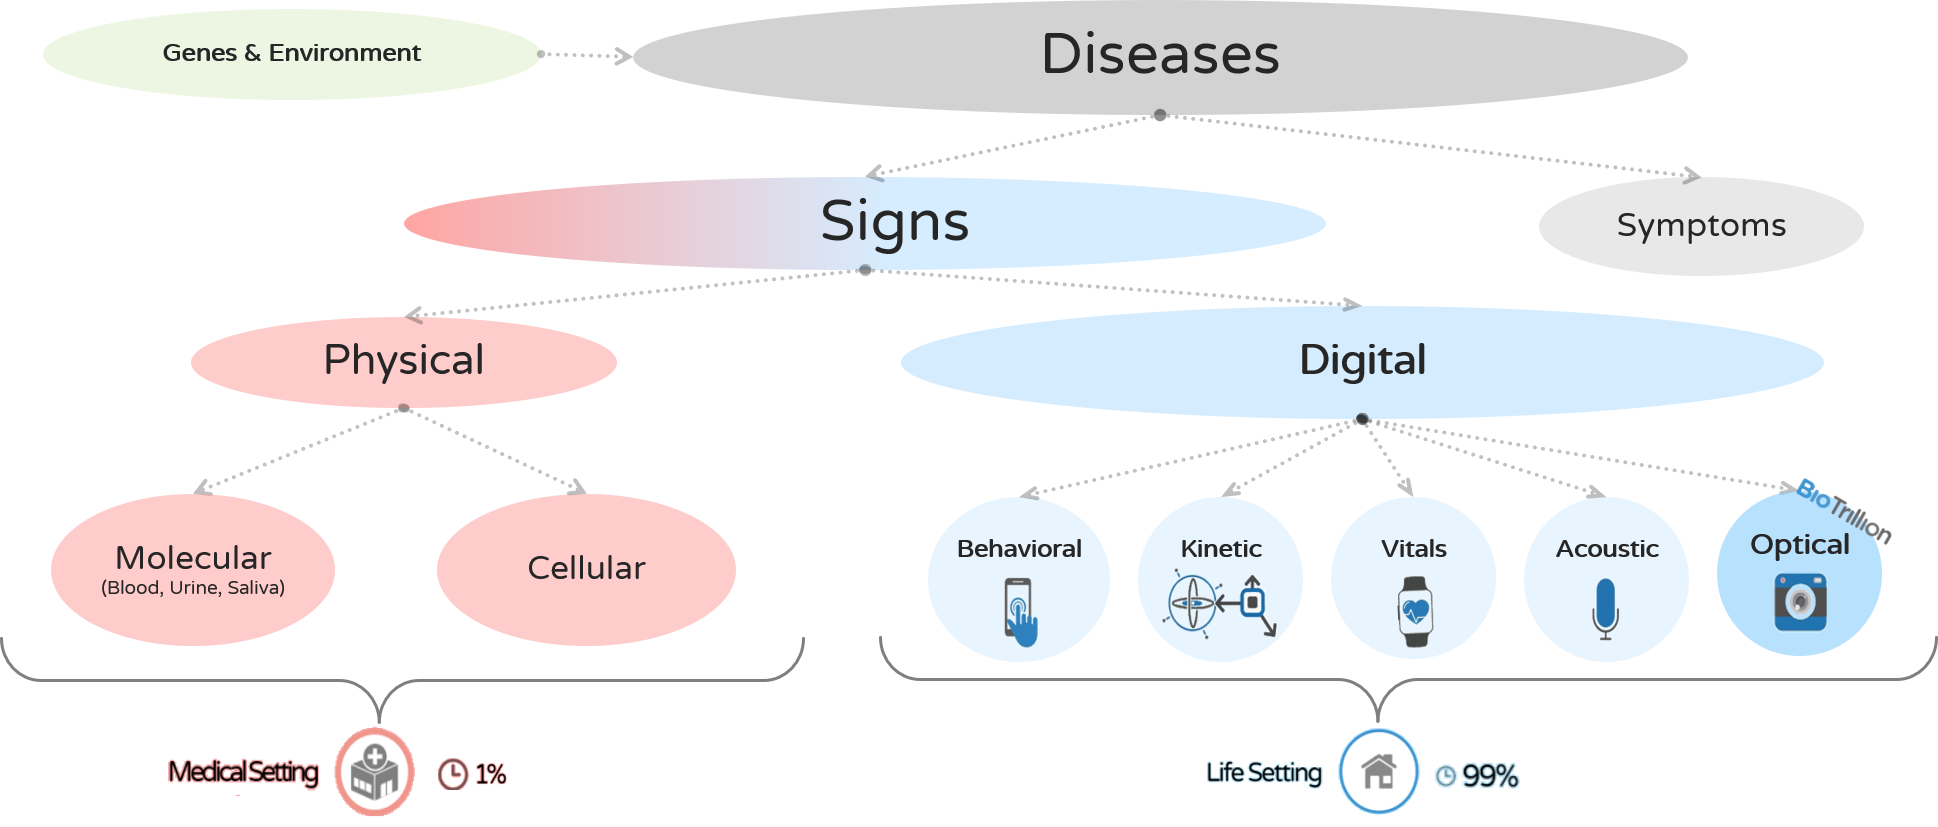 Disease signaling behavior